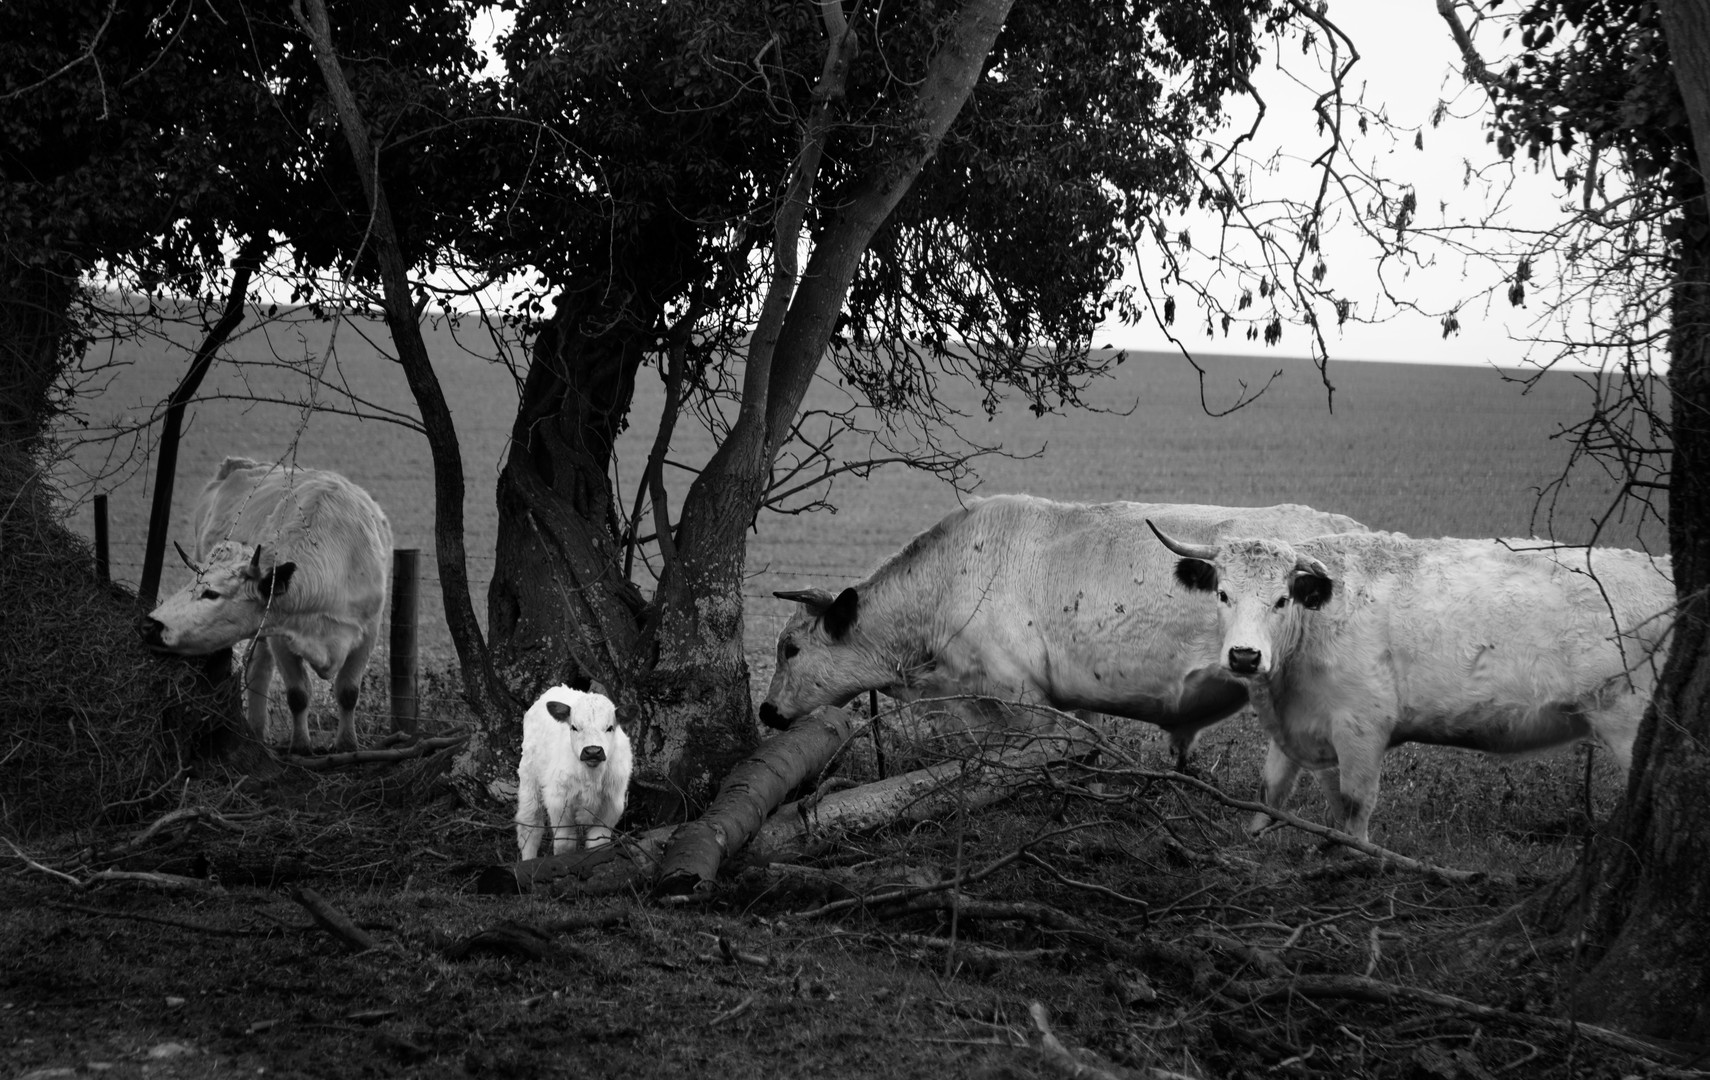 3 Cows and a Calf